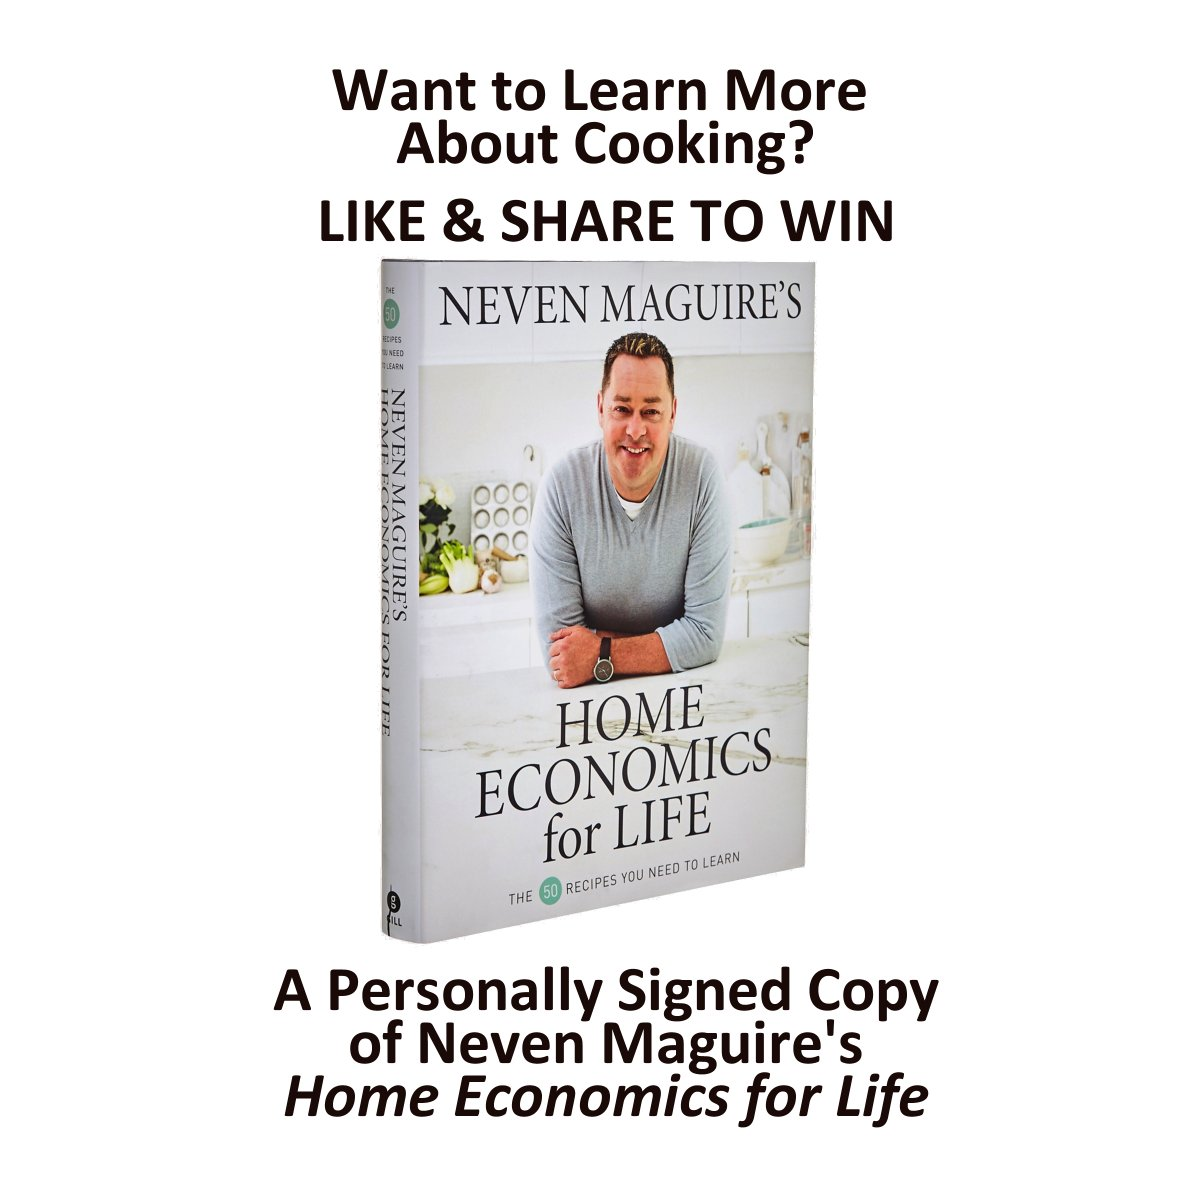 """Want to Learn More About Cooking during #Coronavirus #Covid_19 ? LIKE & SHARE to WIN a Personally Signed Copy of  Neven Maguire's """"Home Economics for Life"""".  Winner announced 1st June. https://t.co/JPraLc5YU1"""